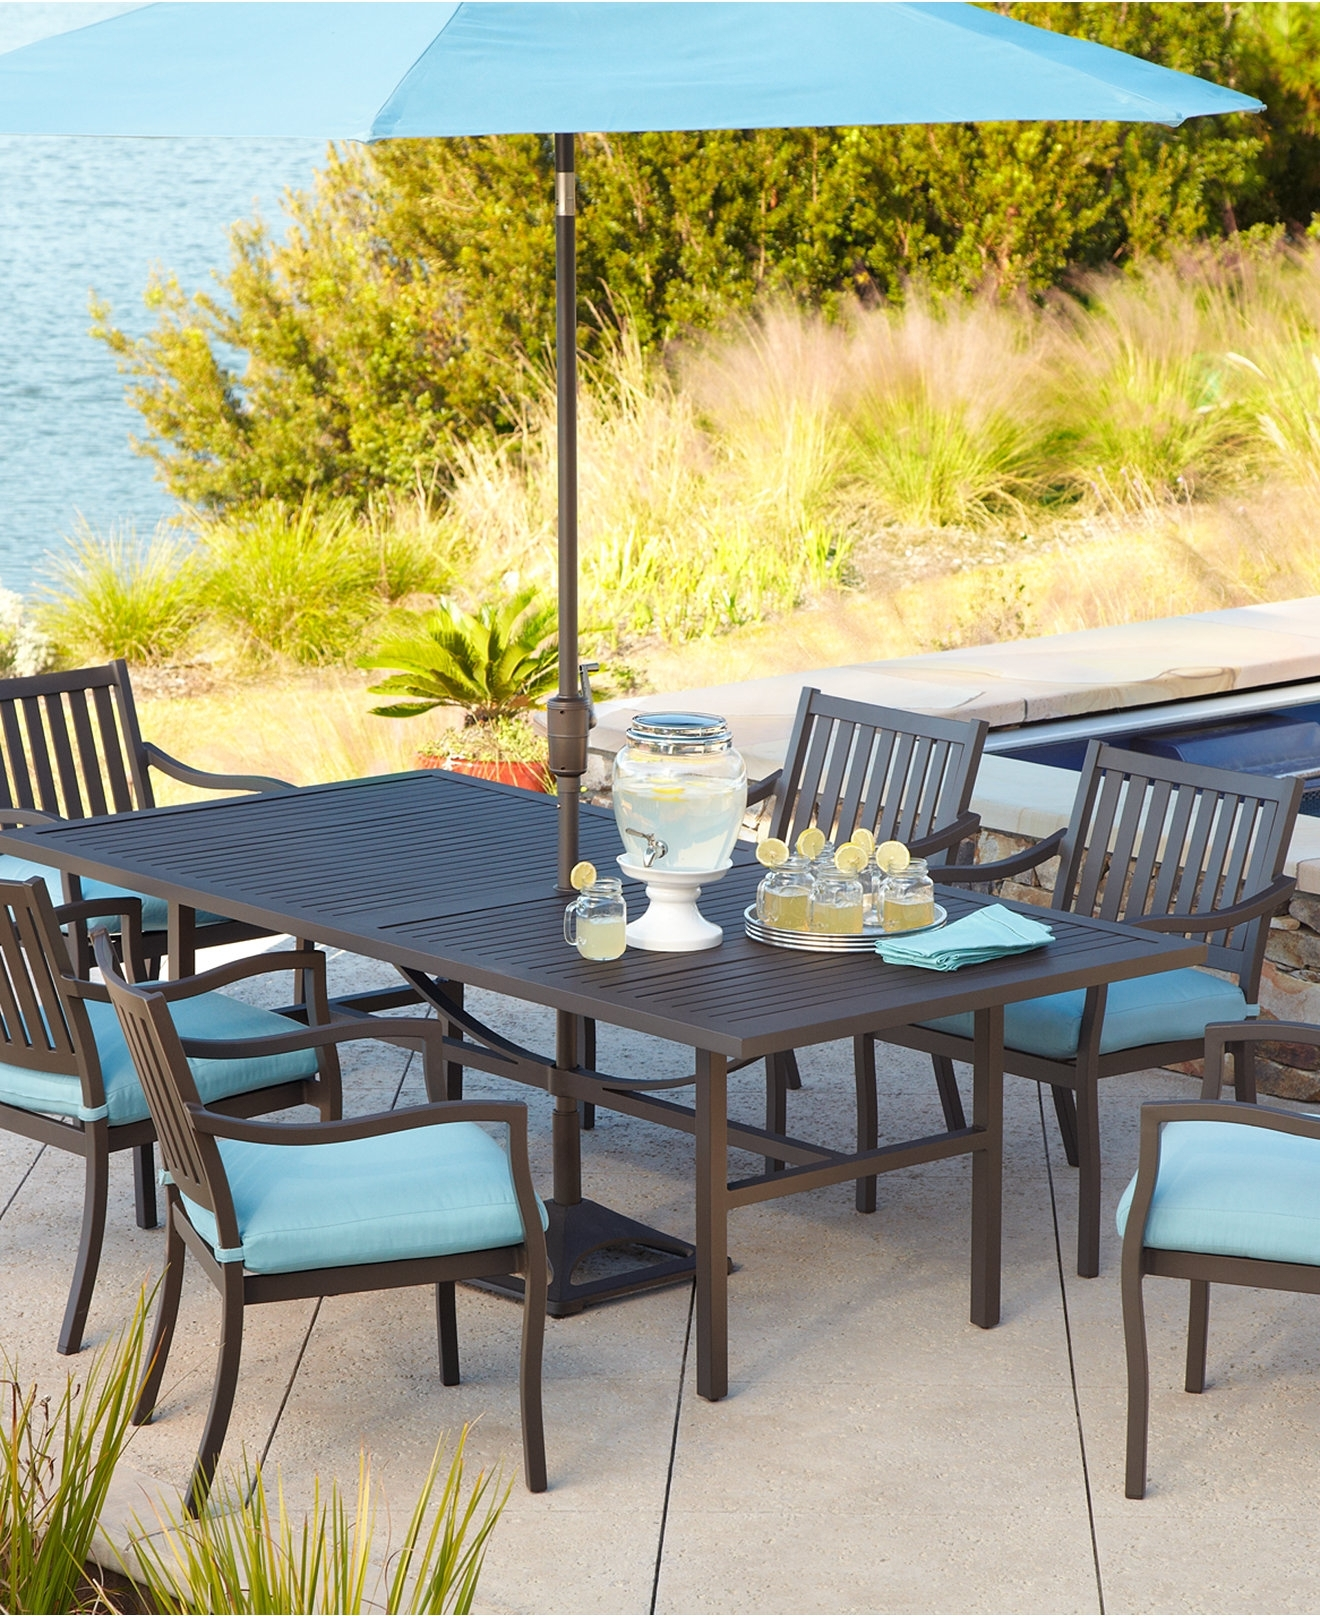 Widely Used Patio Dining Sets With Umbrellas With Round Patio Dining Sets Small Table With Umbrella Hole Aluminum Set (View 18 of 20)